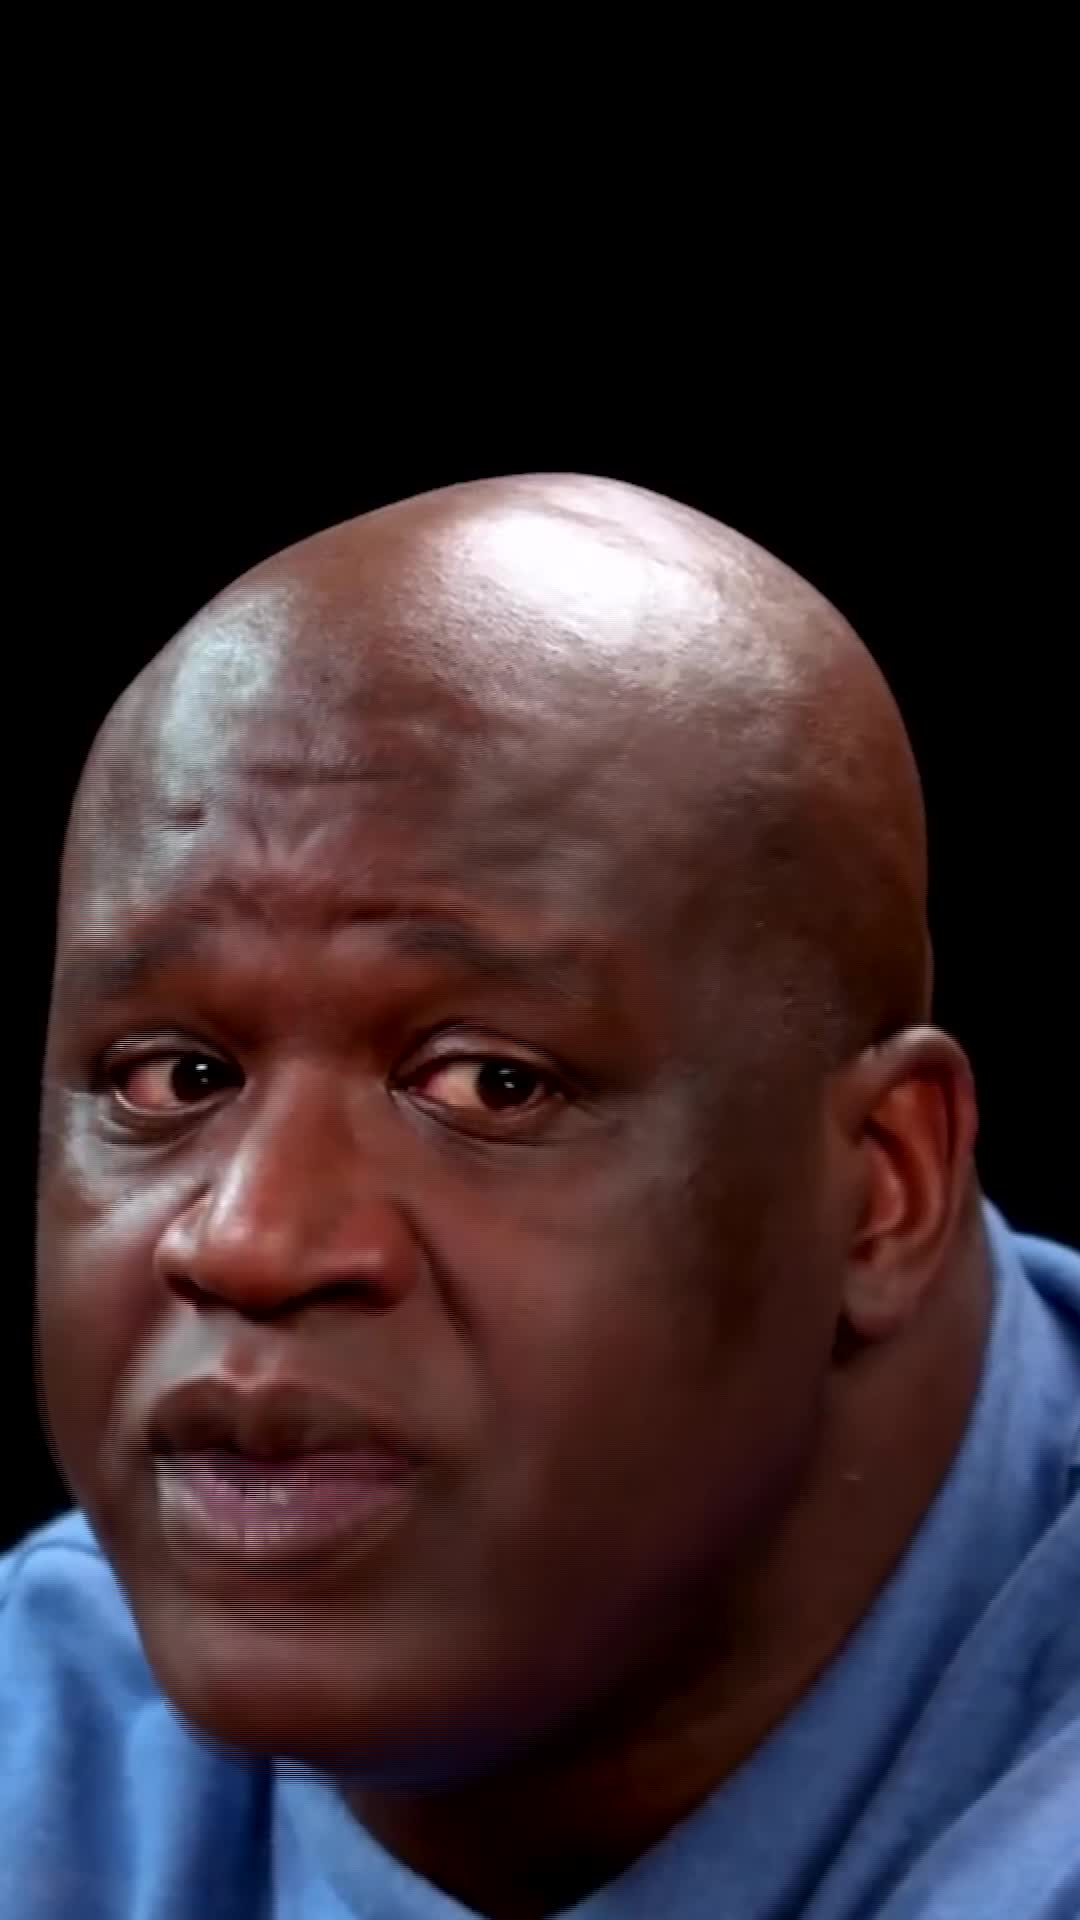 oh, ooo, shaq, shaquille o'neal, suprising, surprise, surprised, surprised shaq, woah, Surprised Shaq GIFs